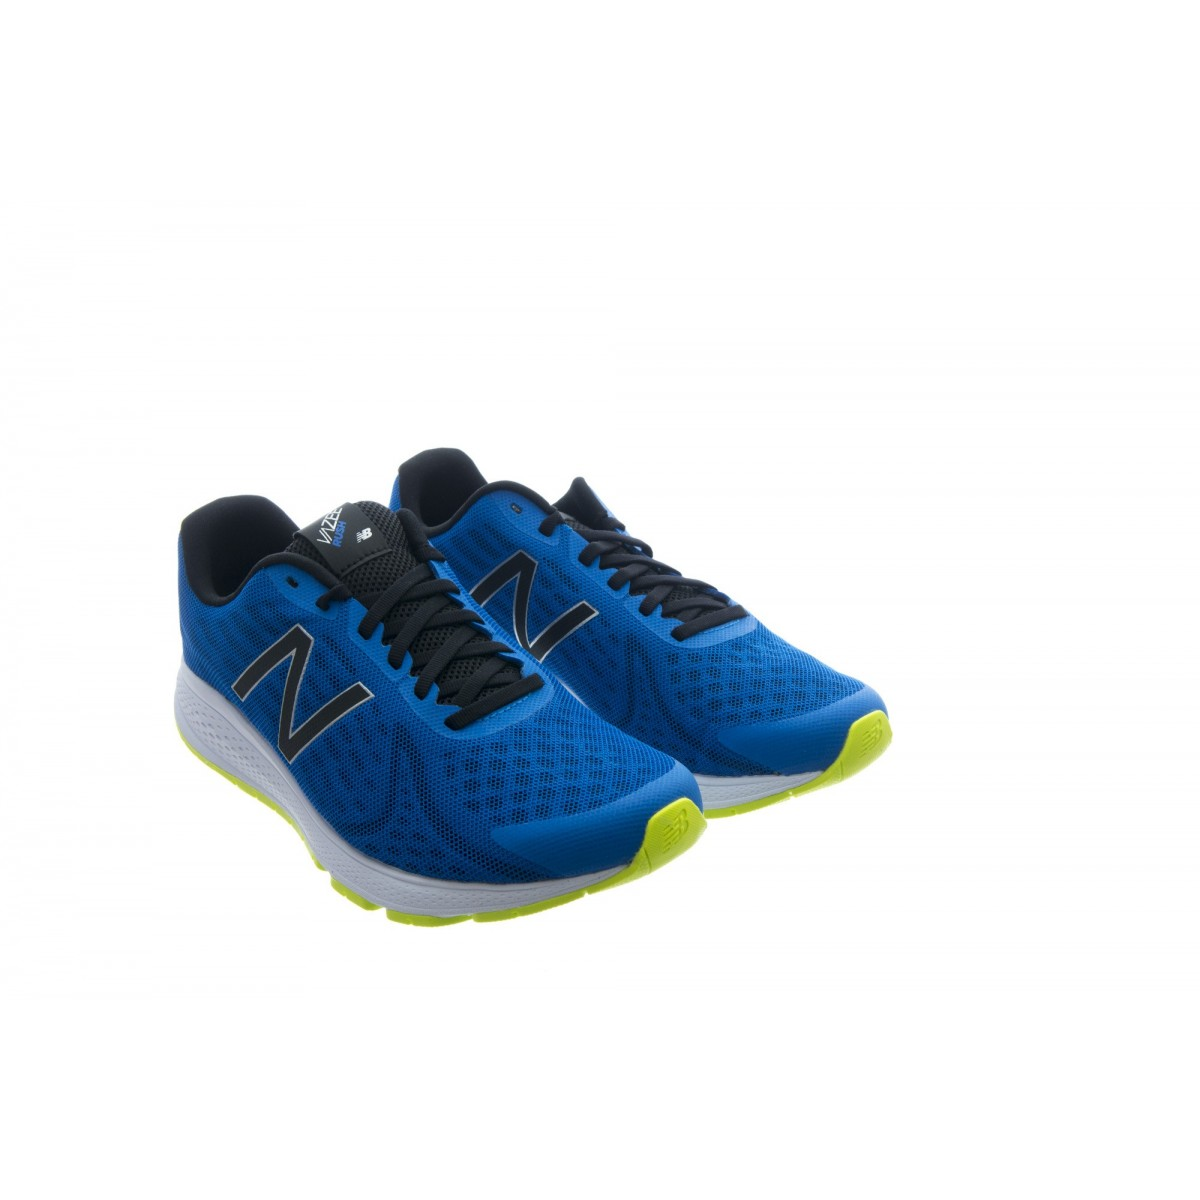 Scarpe - M rush running fashion